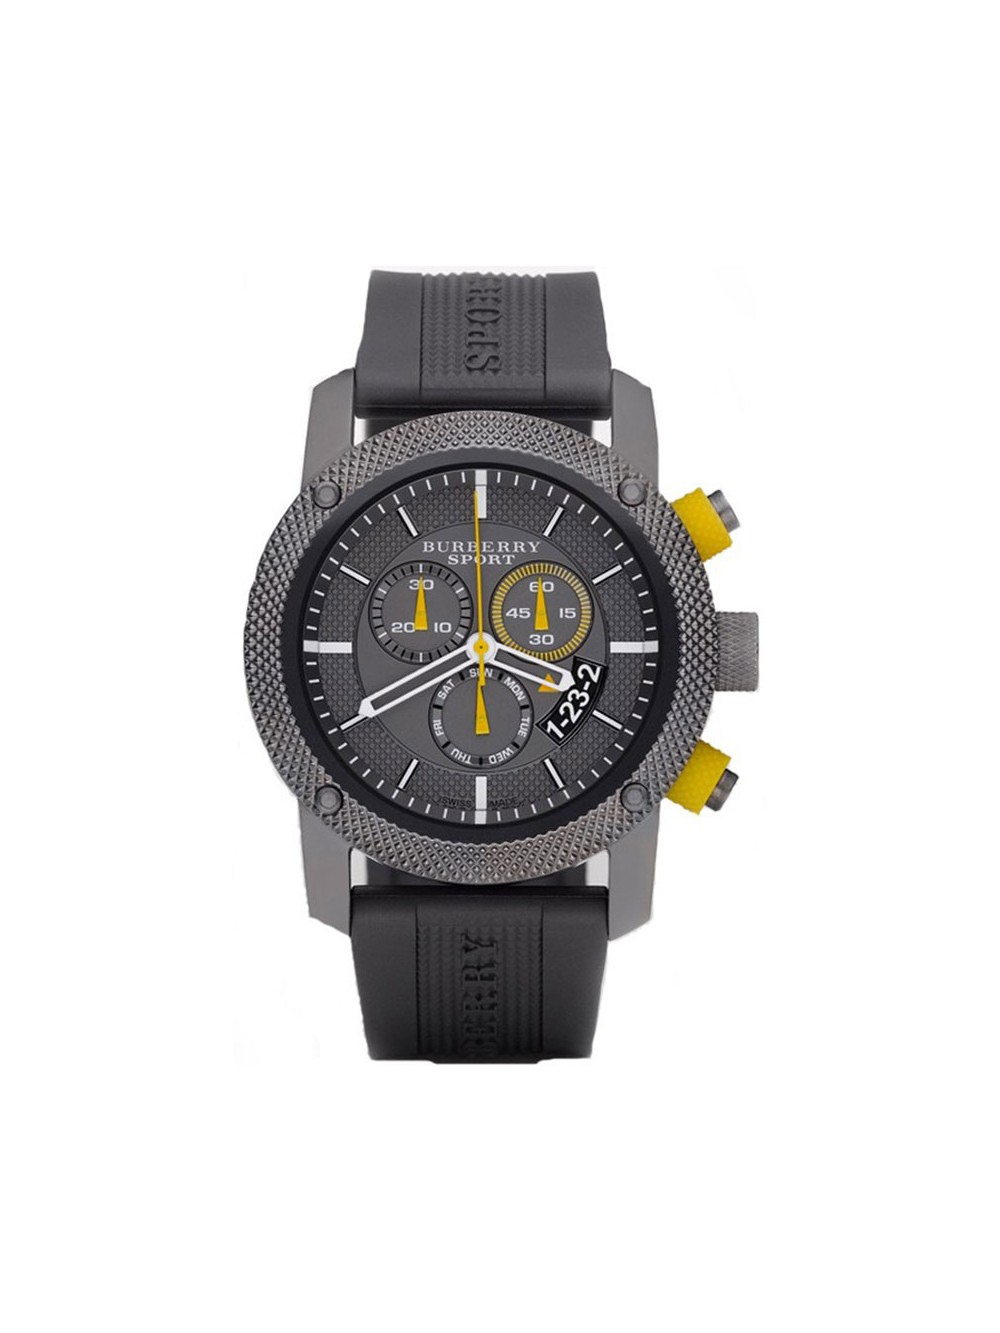 rubber full steel compass retrowerk watches com